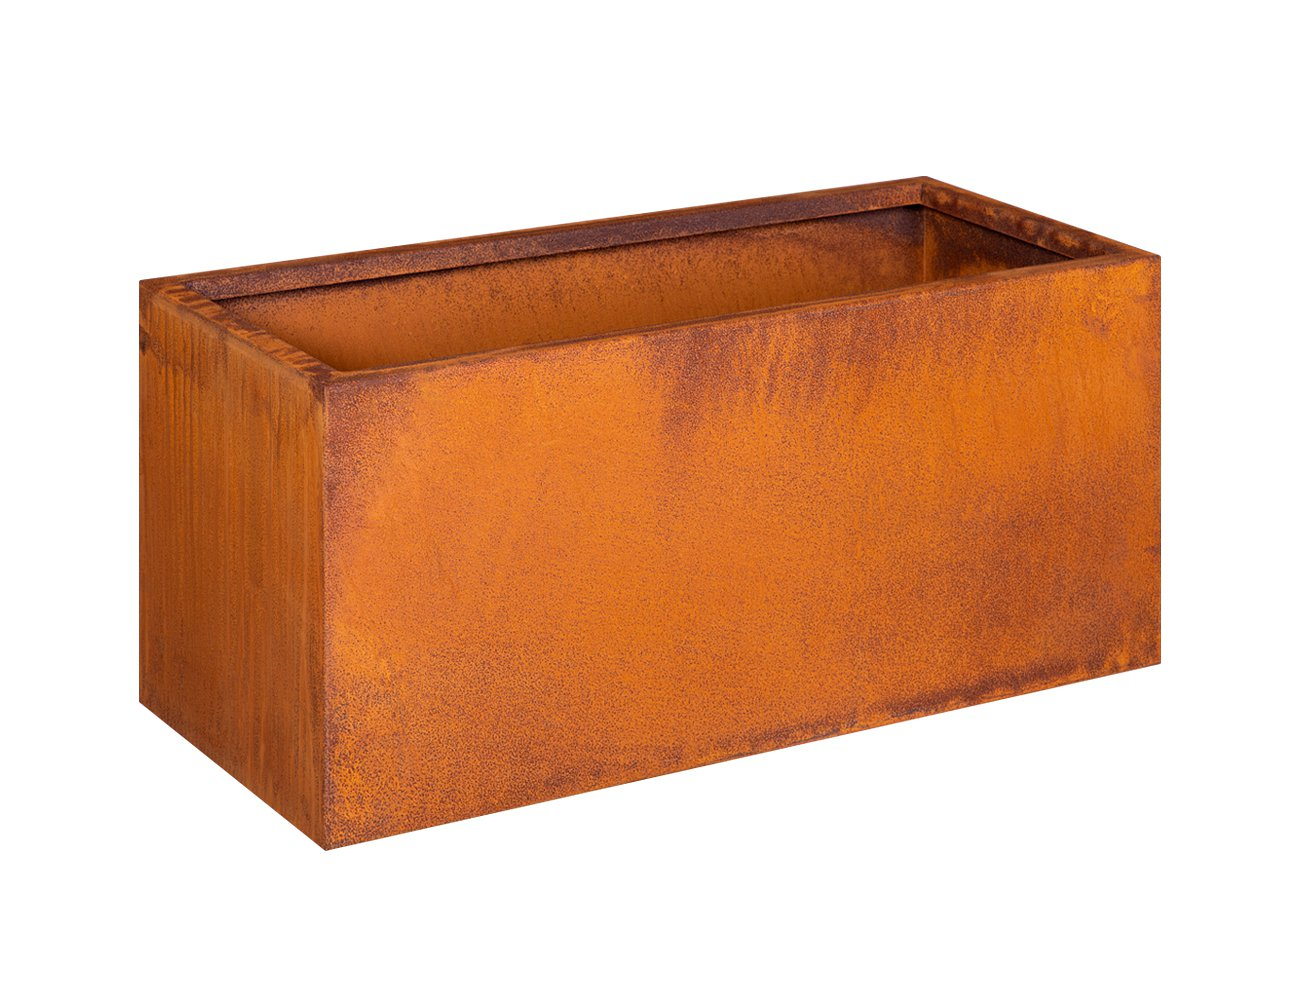 Atlas Classic Medium Corten Steel Planter Box